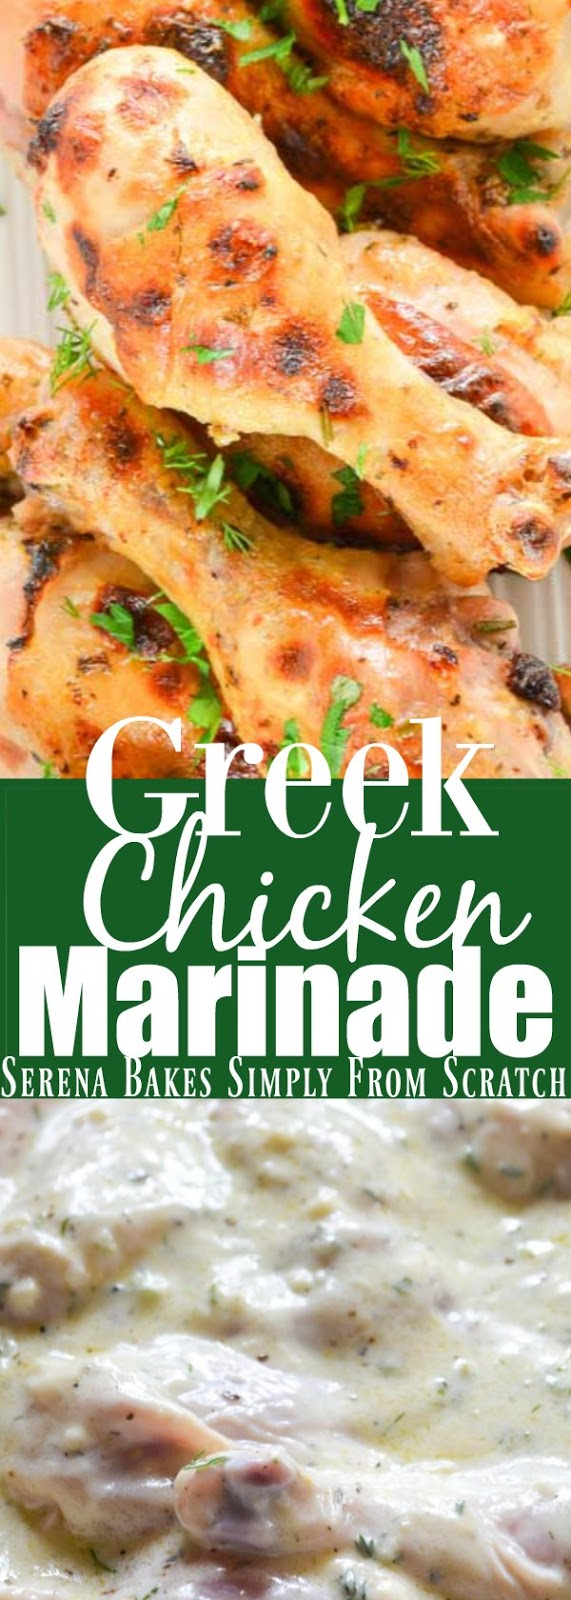 Greek Chicken Marinade makes for the most amazing tender chicken with crispy skin and delicious flavor. Is delicious baked it the oven or barbecued from Serena Bakes Simply From Scratch.